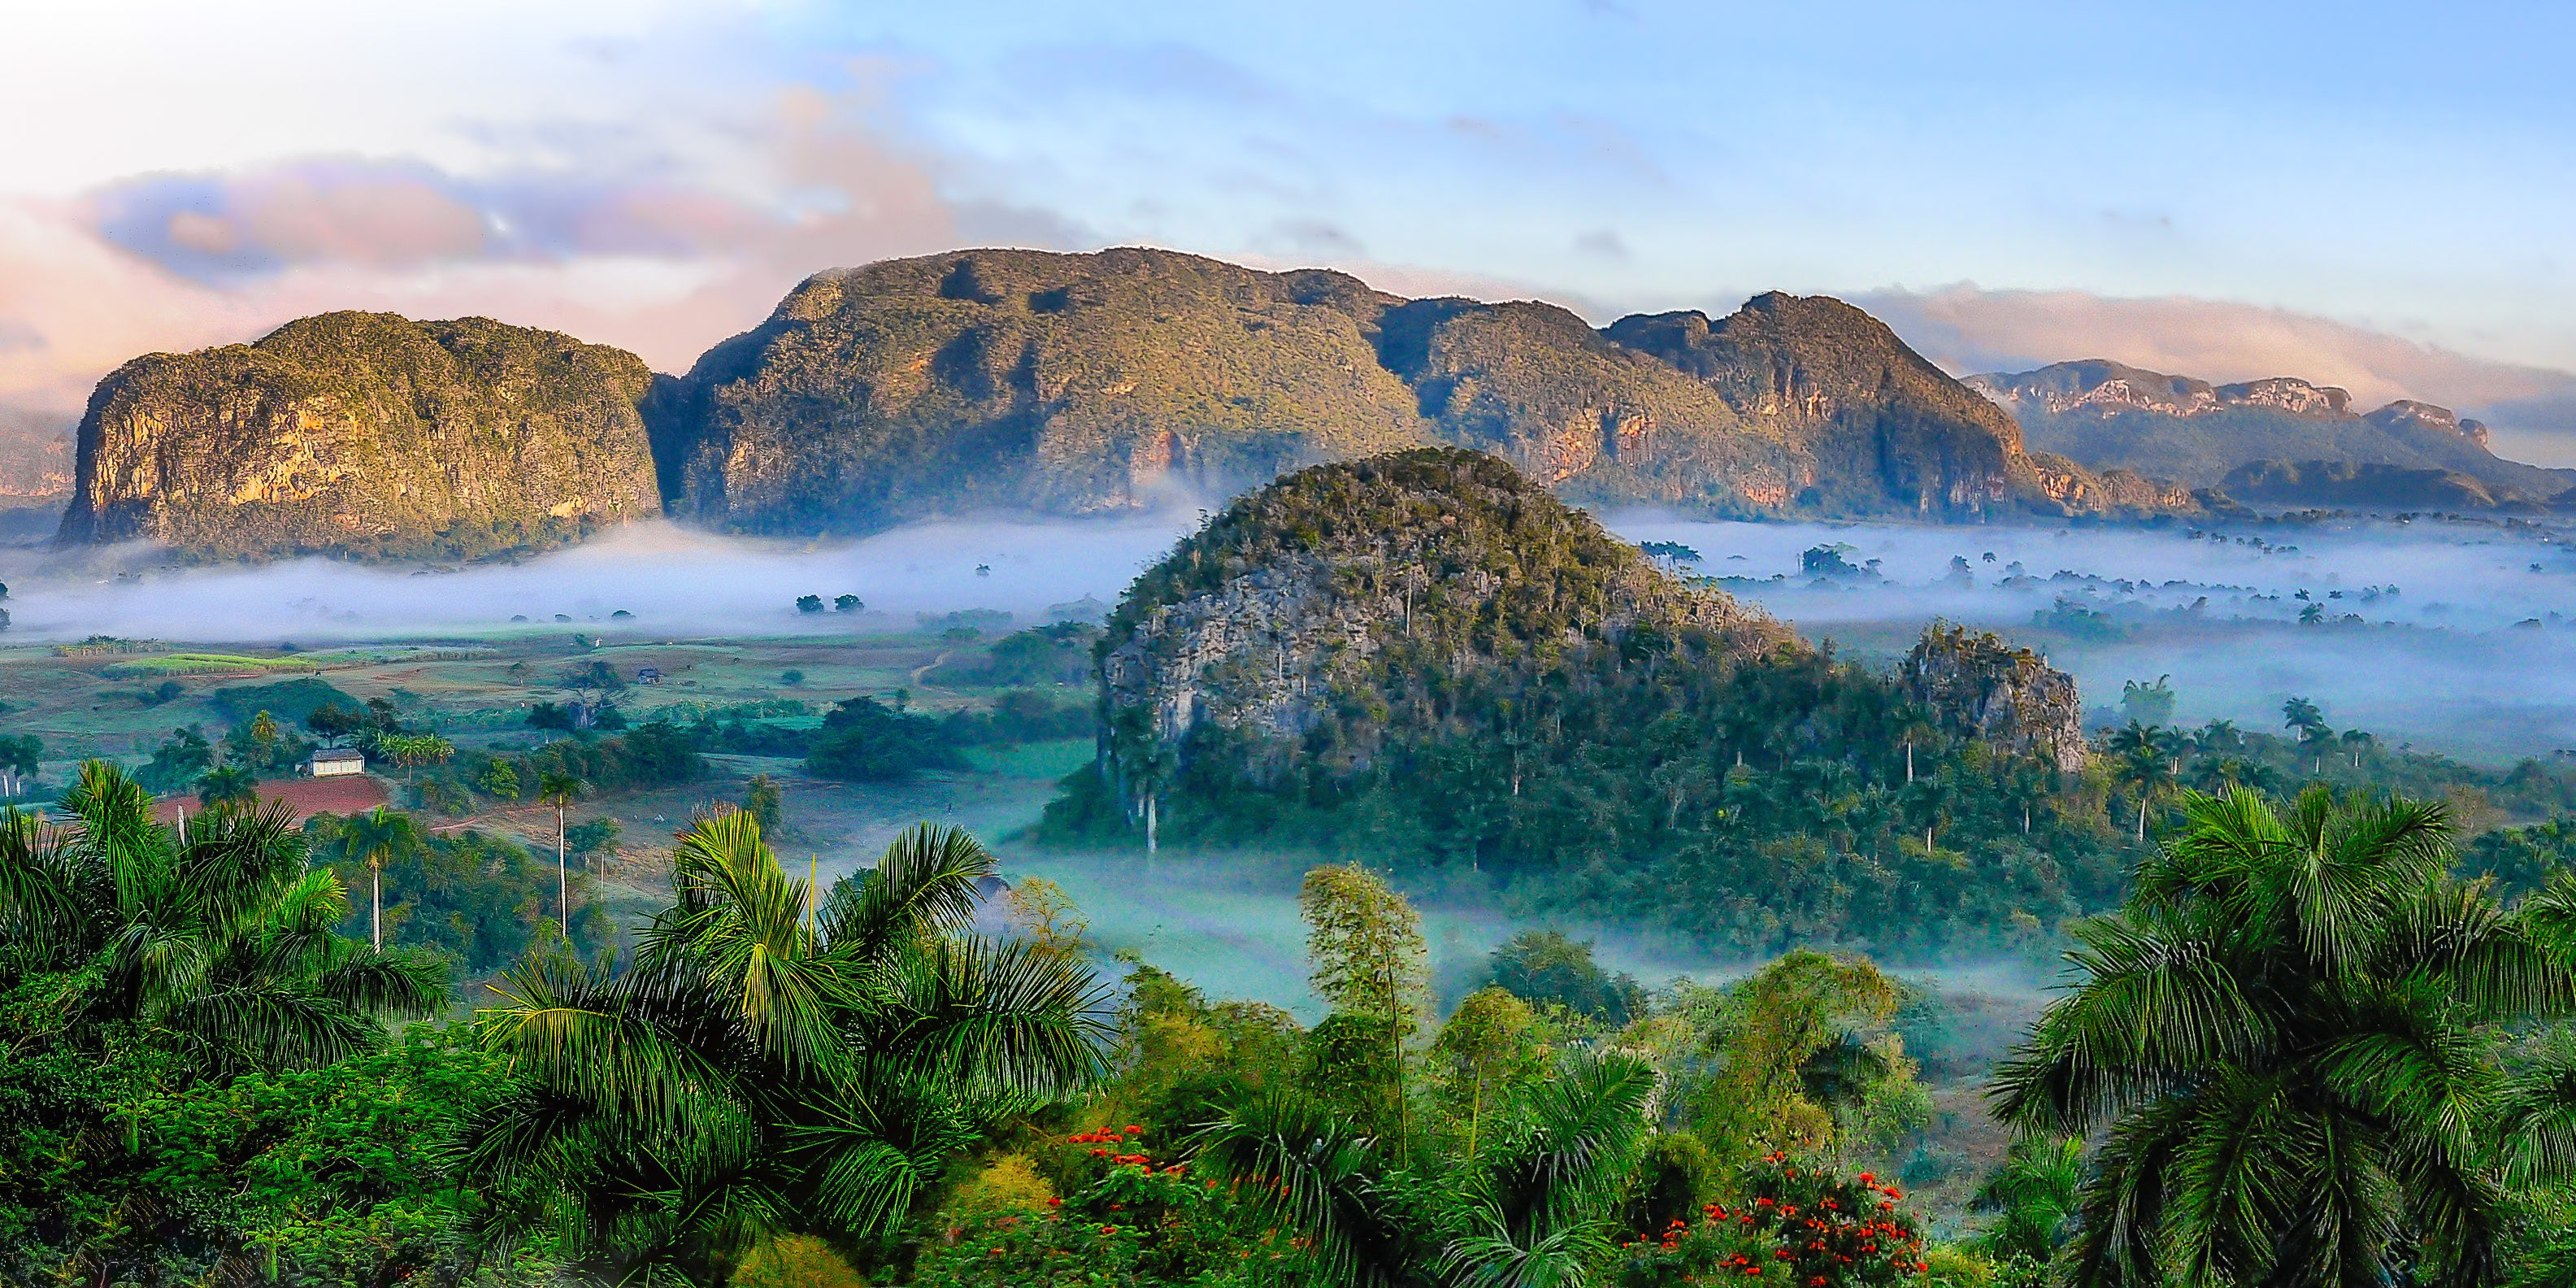 Mogote hills in Viñales Valley